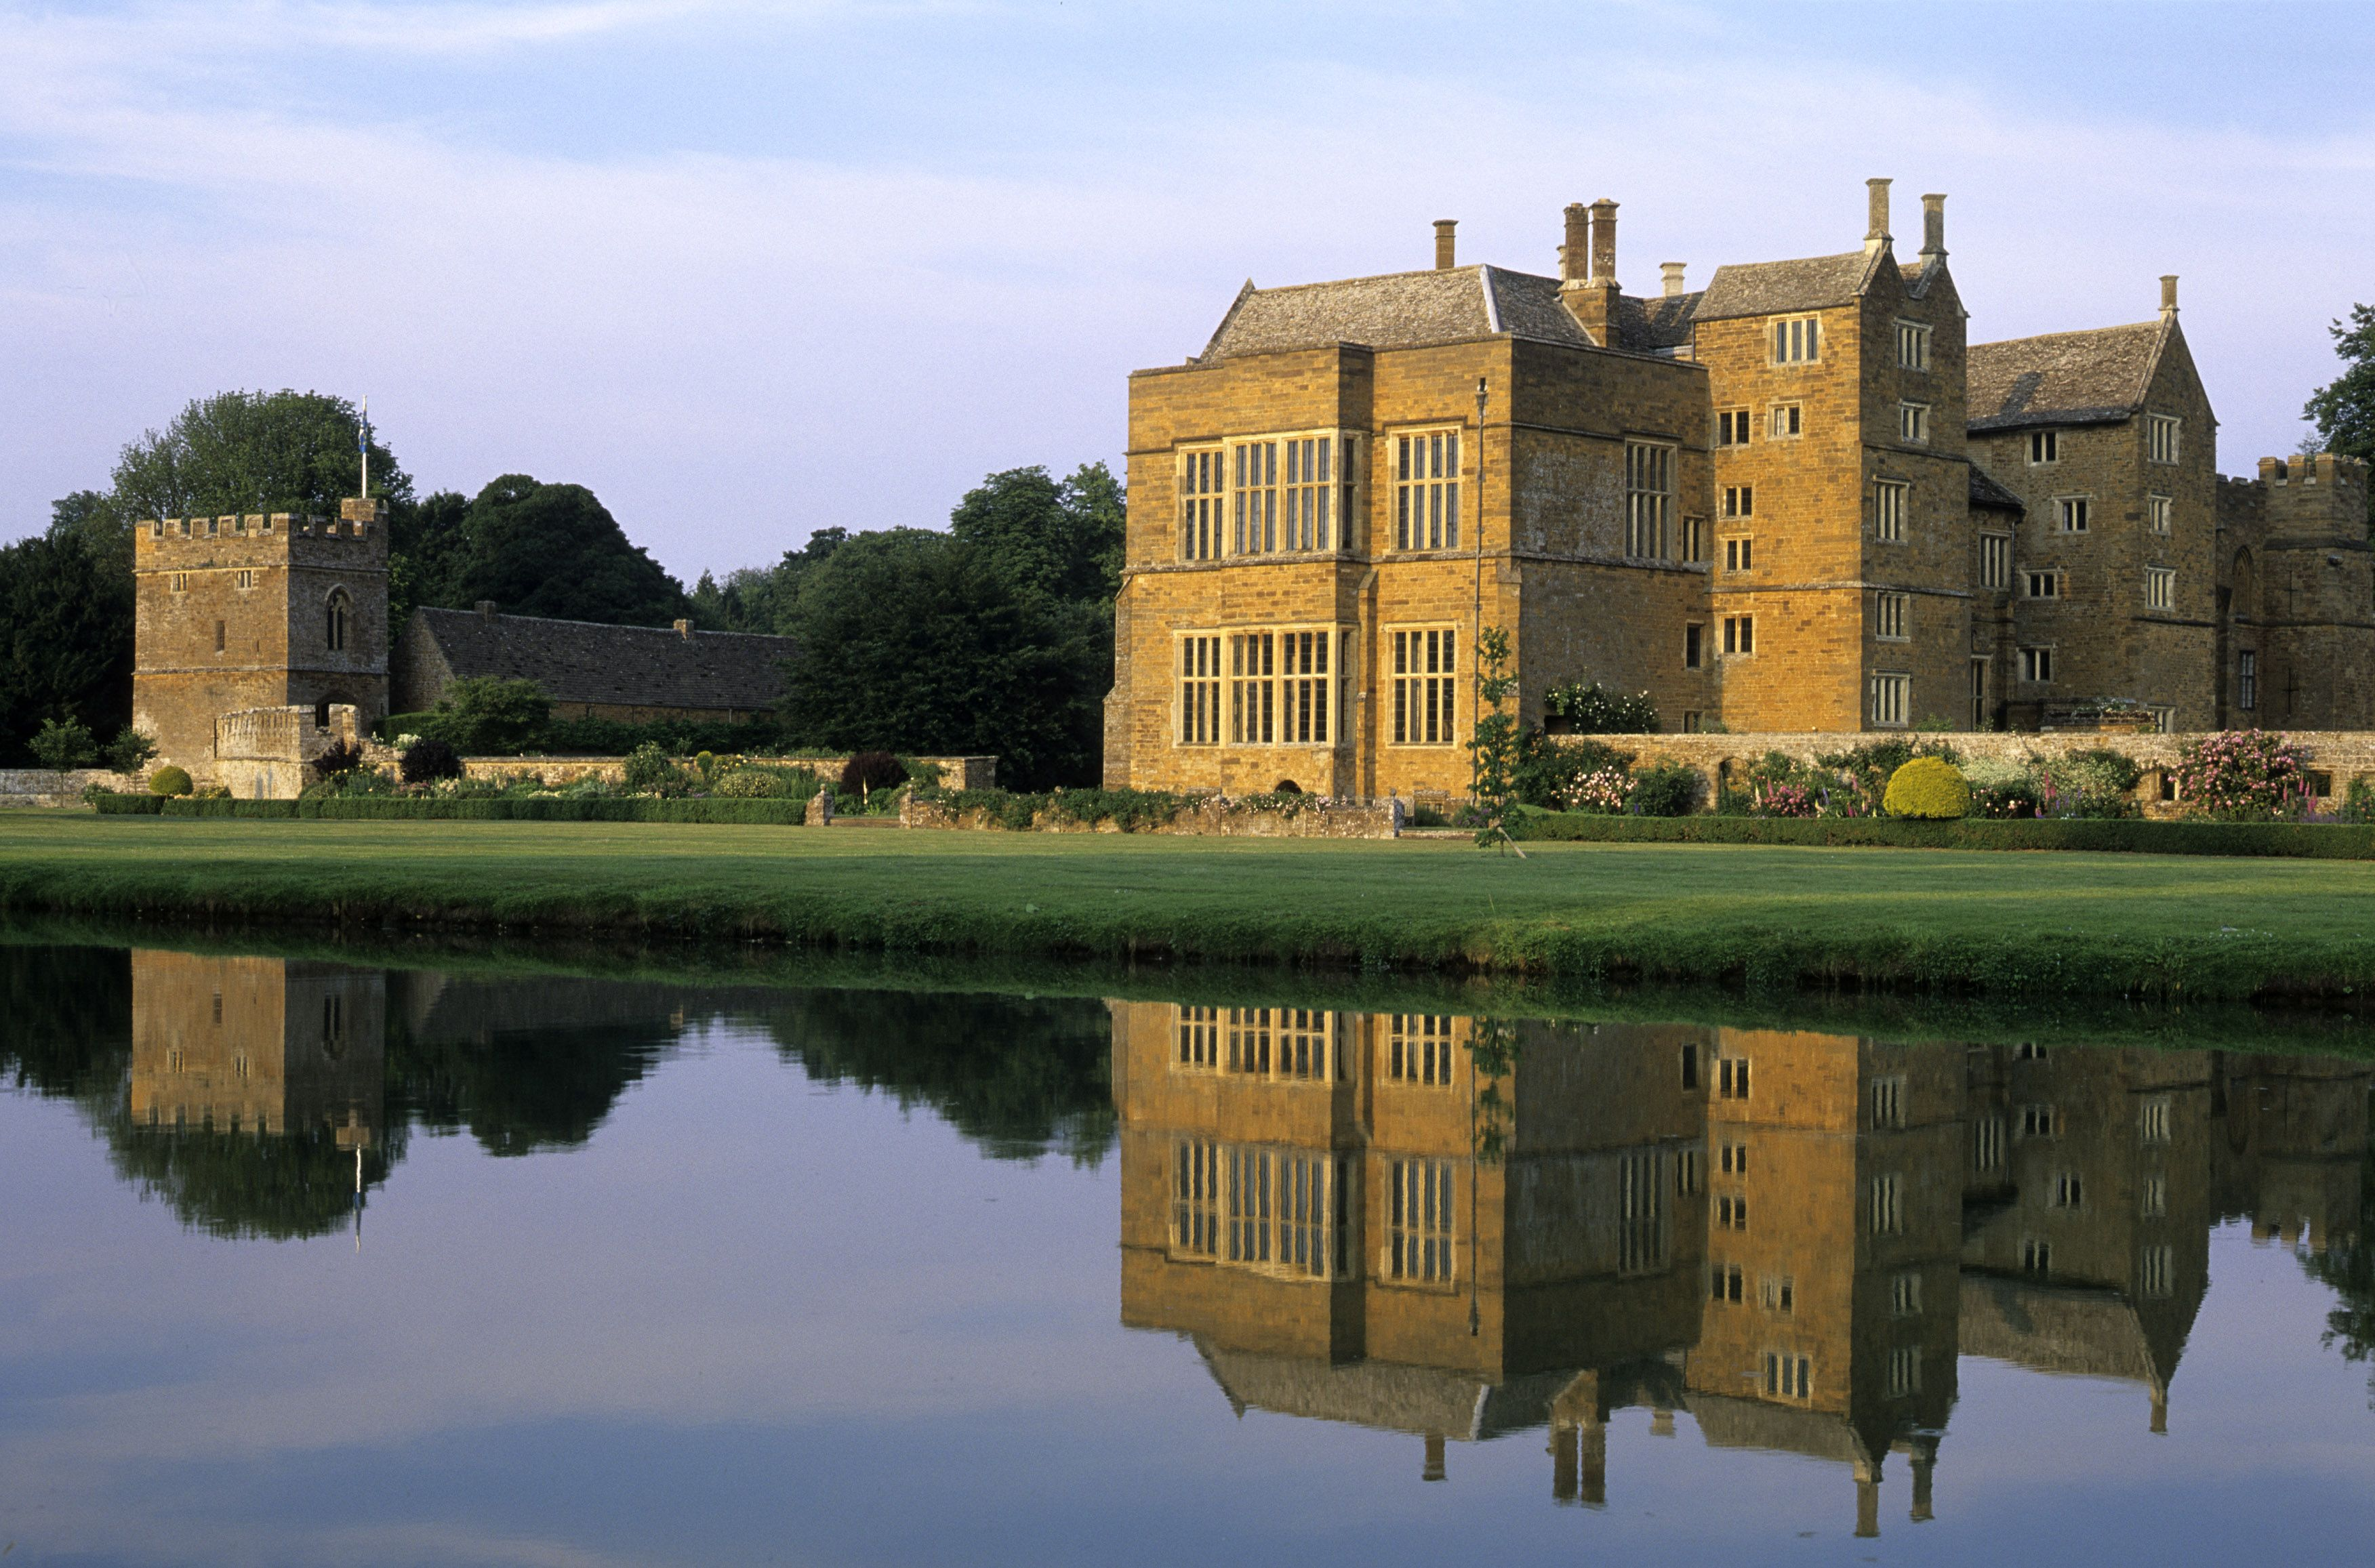 Broughton Castle, Oxfordshire, England